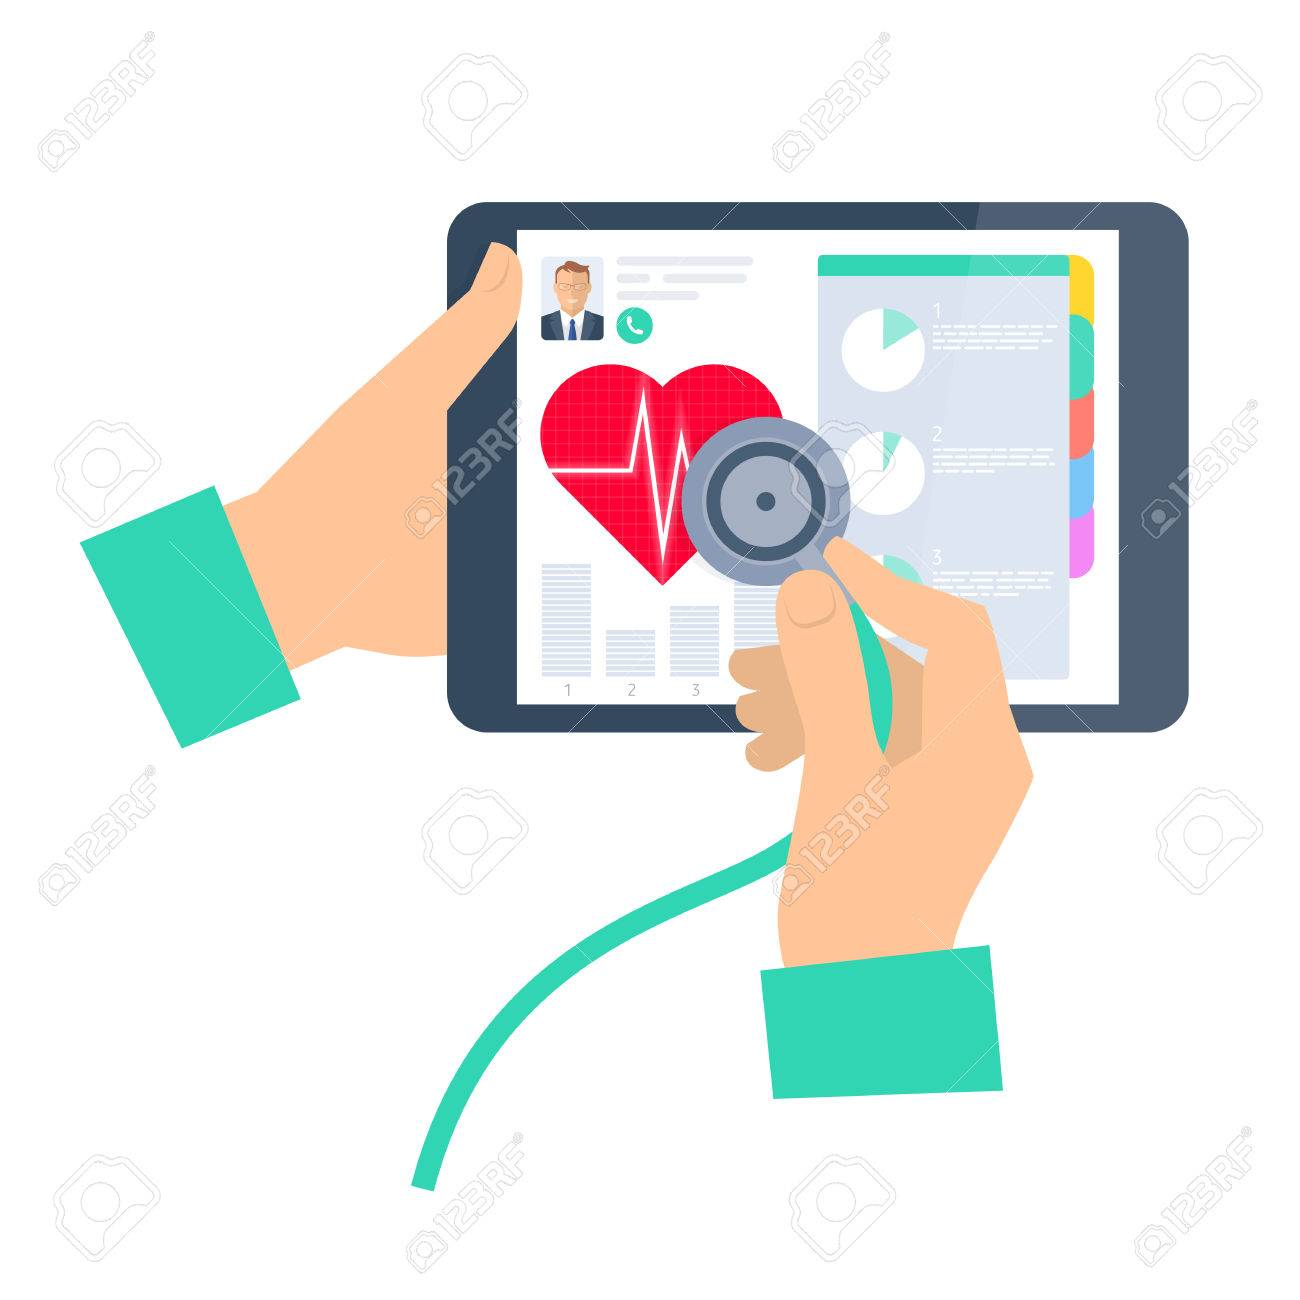 doctor using a stethoscope on a tablet computer telemedicinedoctor using a stethoscope on a tablet computer telemedicine and telehealth flat vector concept illustration